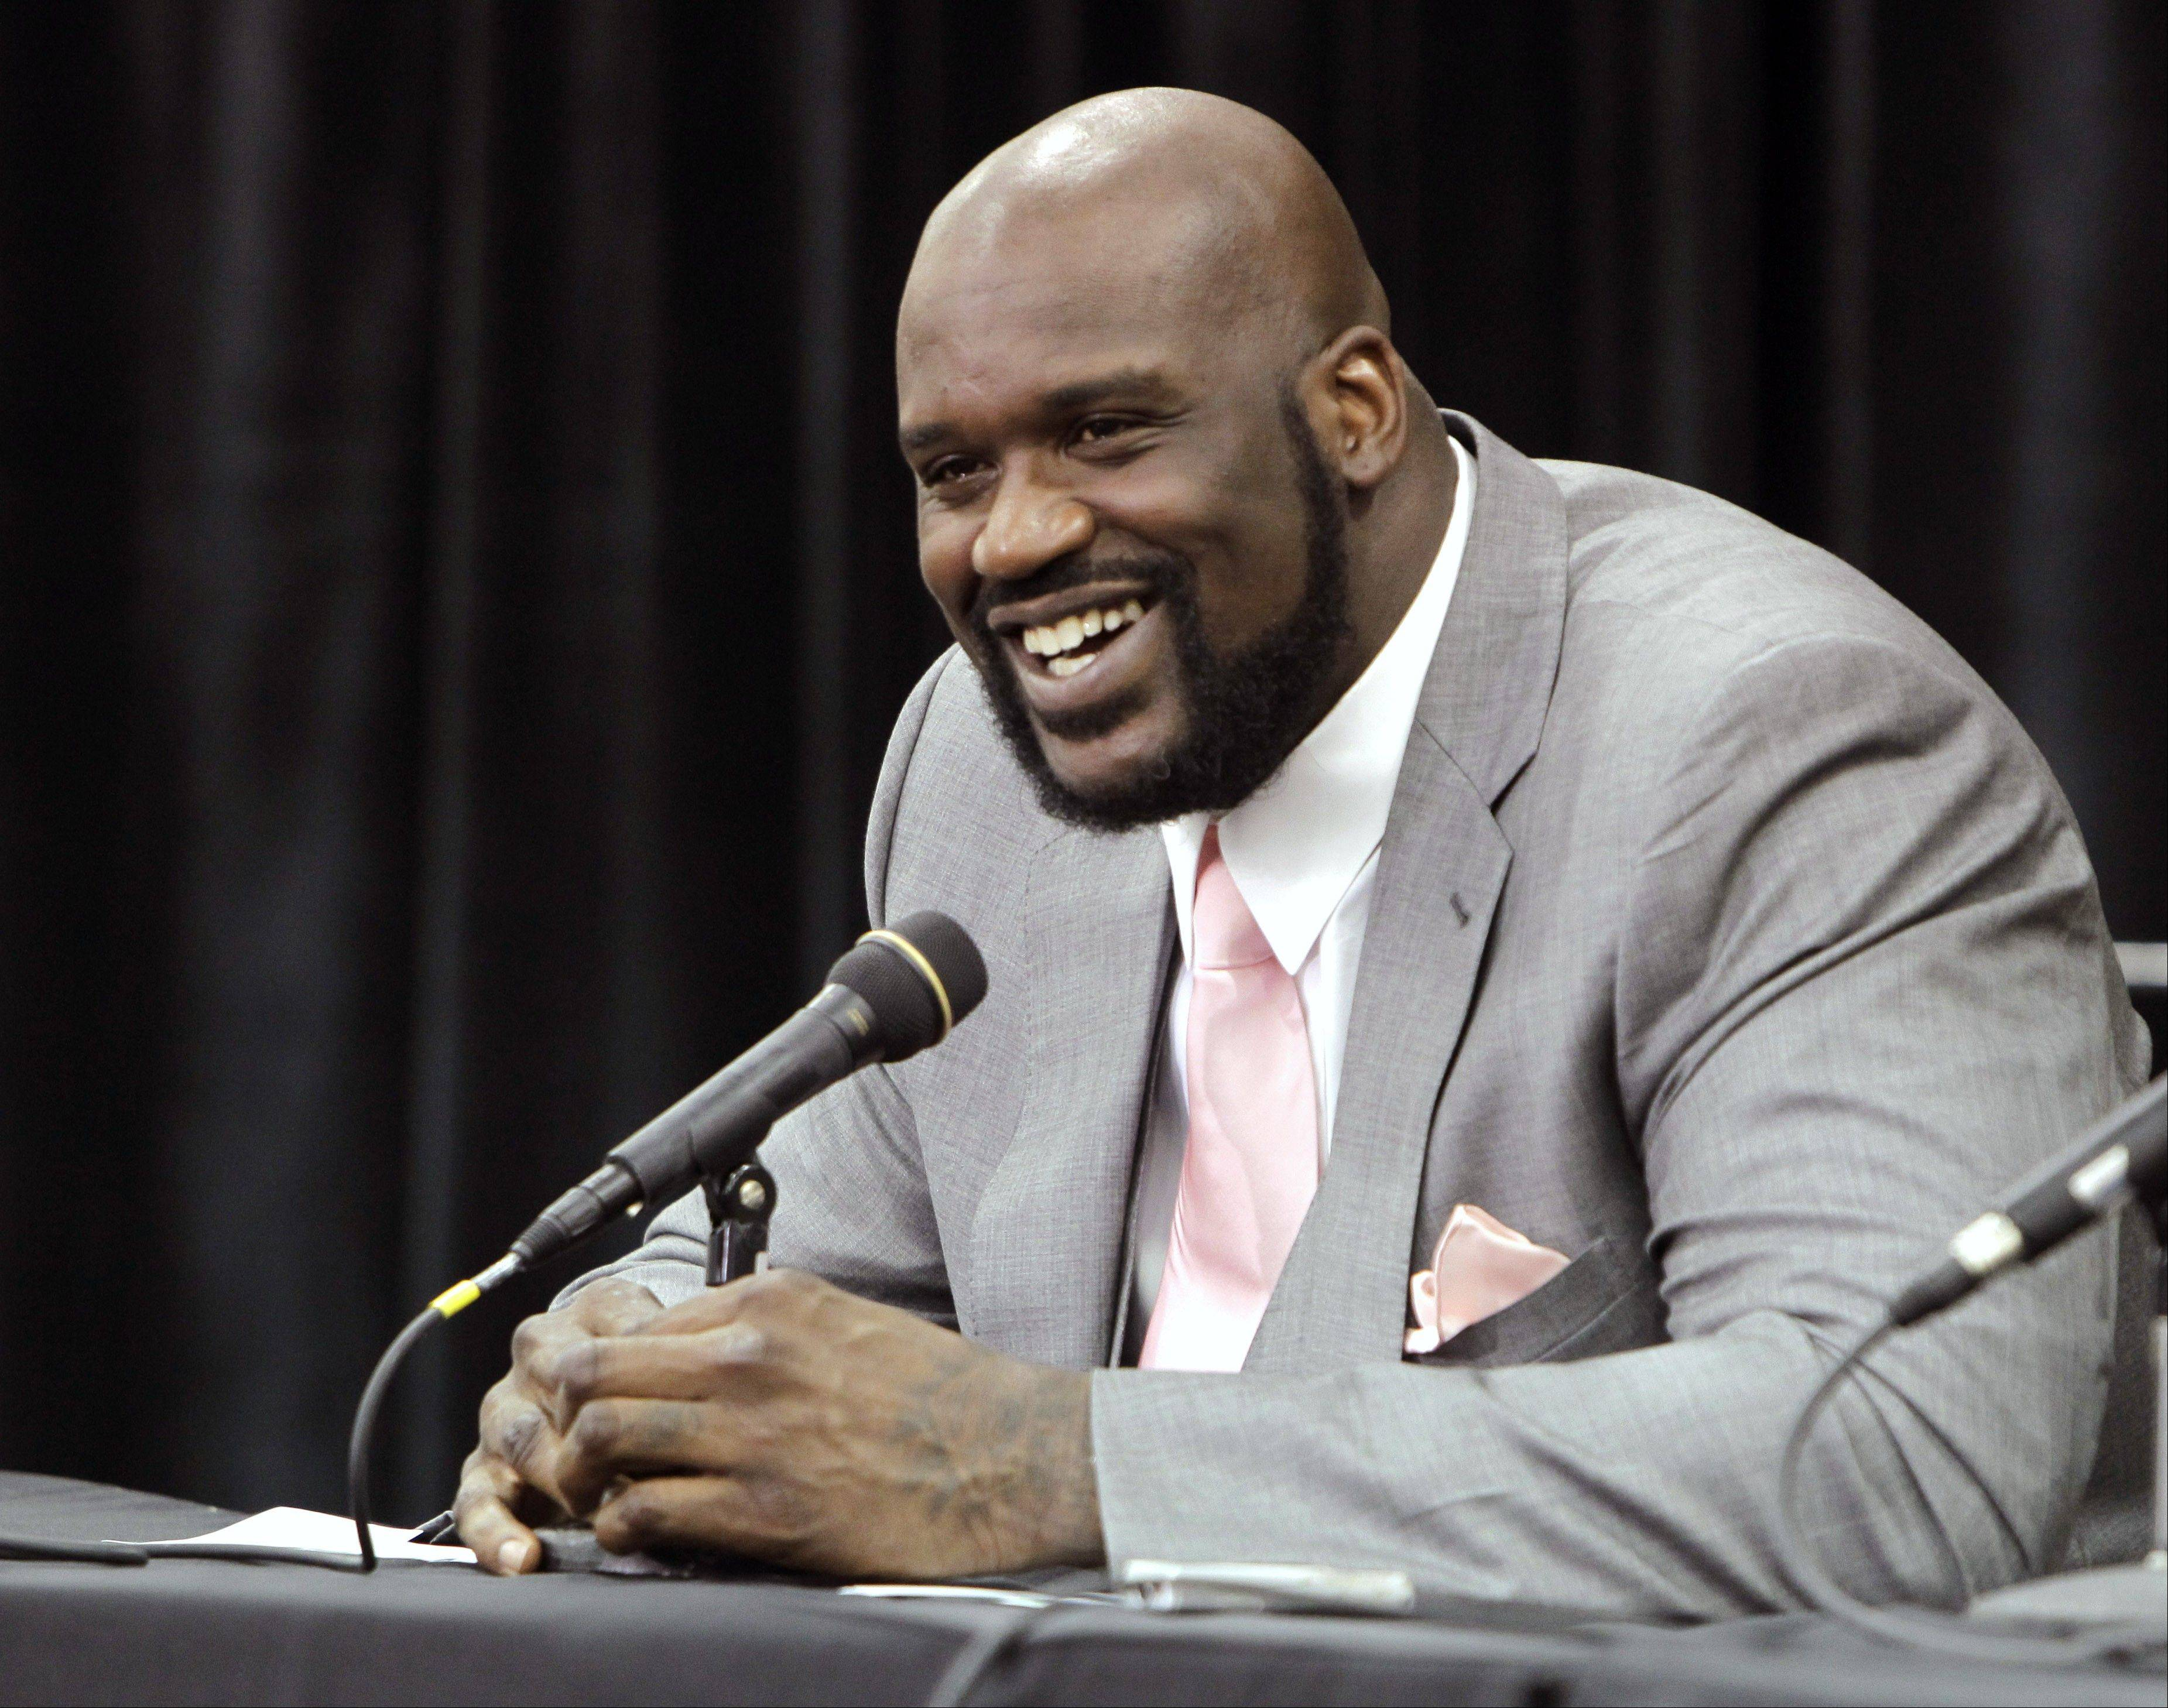 Shaquille O'Neal worked in a free throw reference to his retirement speech.